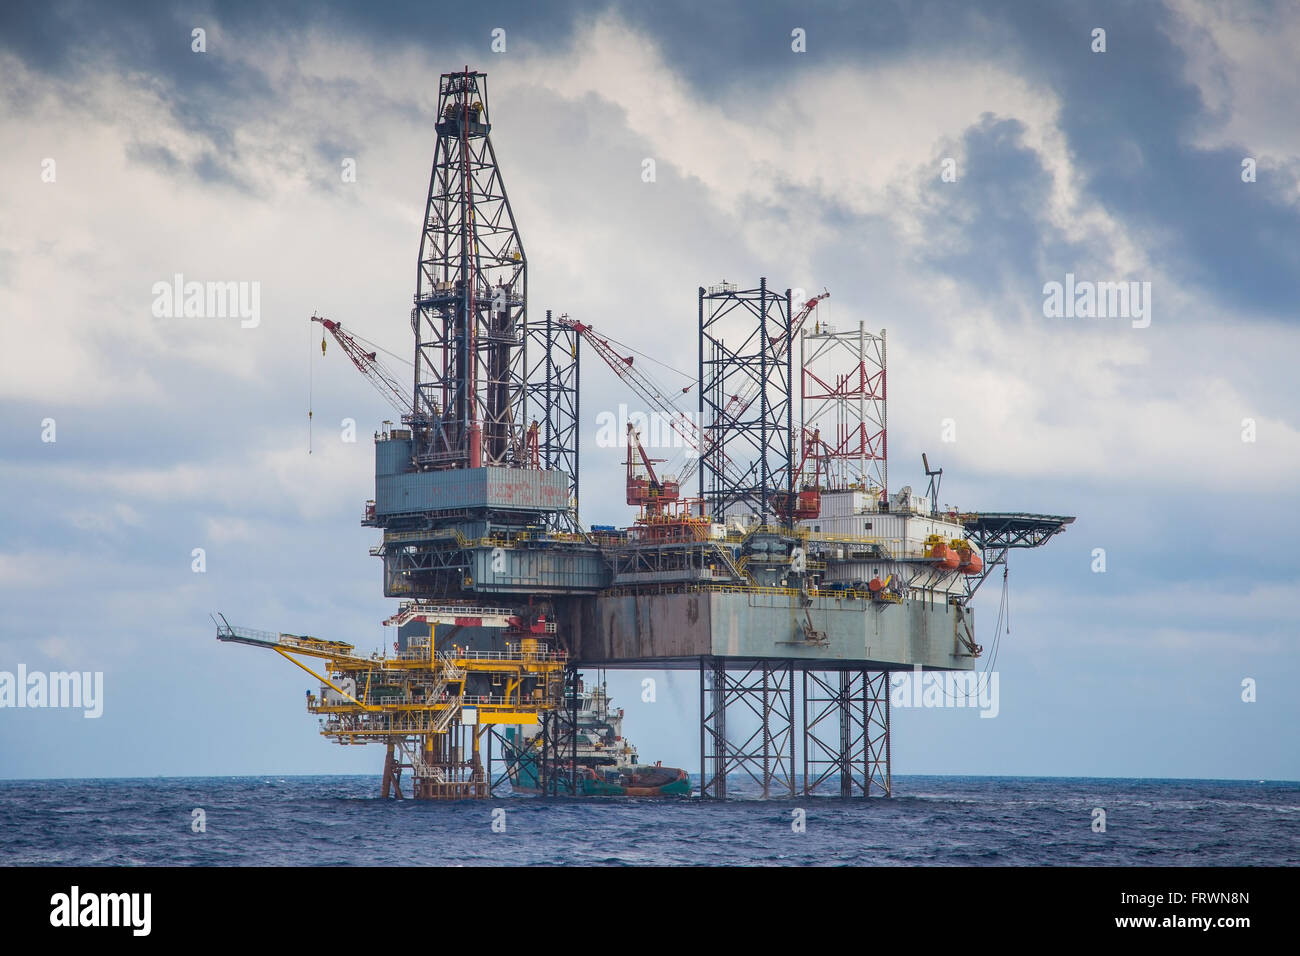 Oil and gas drilling rig work over remote wellhead platform to completion oil and gas produce well by using drilling - Stock Image